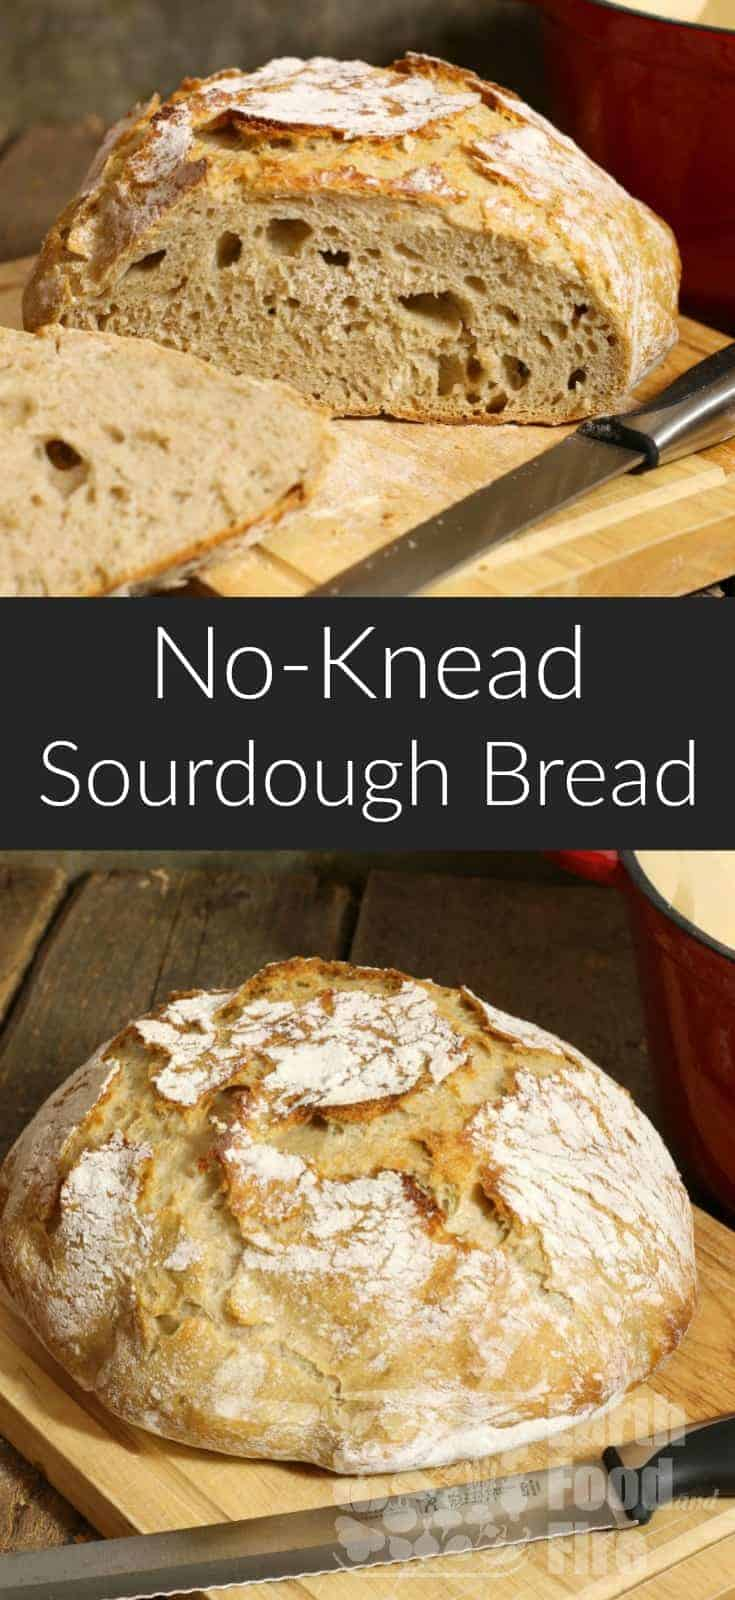 A basic sourdough bread requiring minimal effort. This no knead recipe is a great intro to baking sourdough bread from scratch. #bread #sourdough #noknead #fromscratch